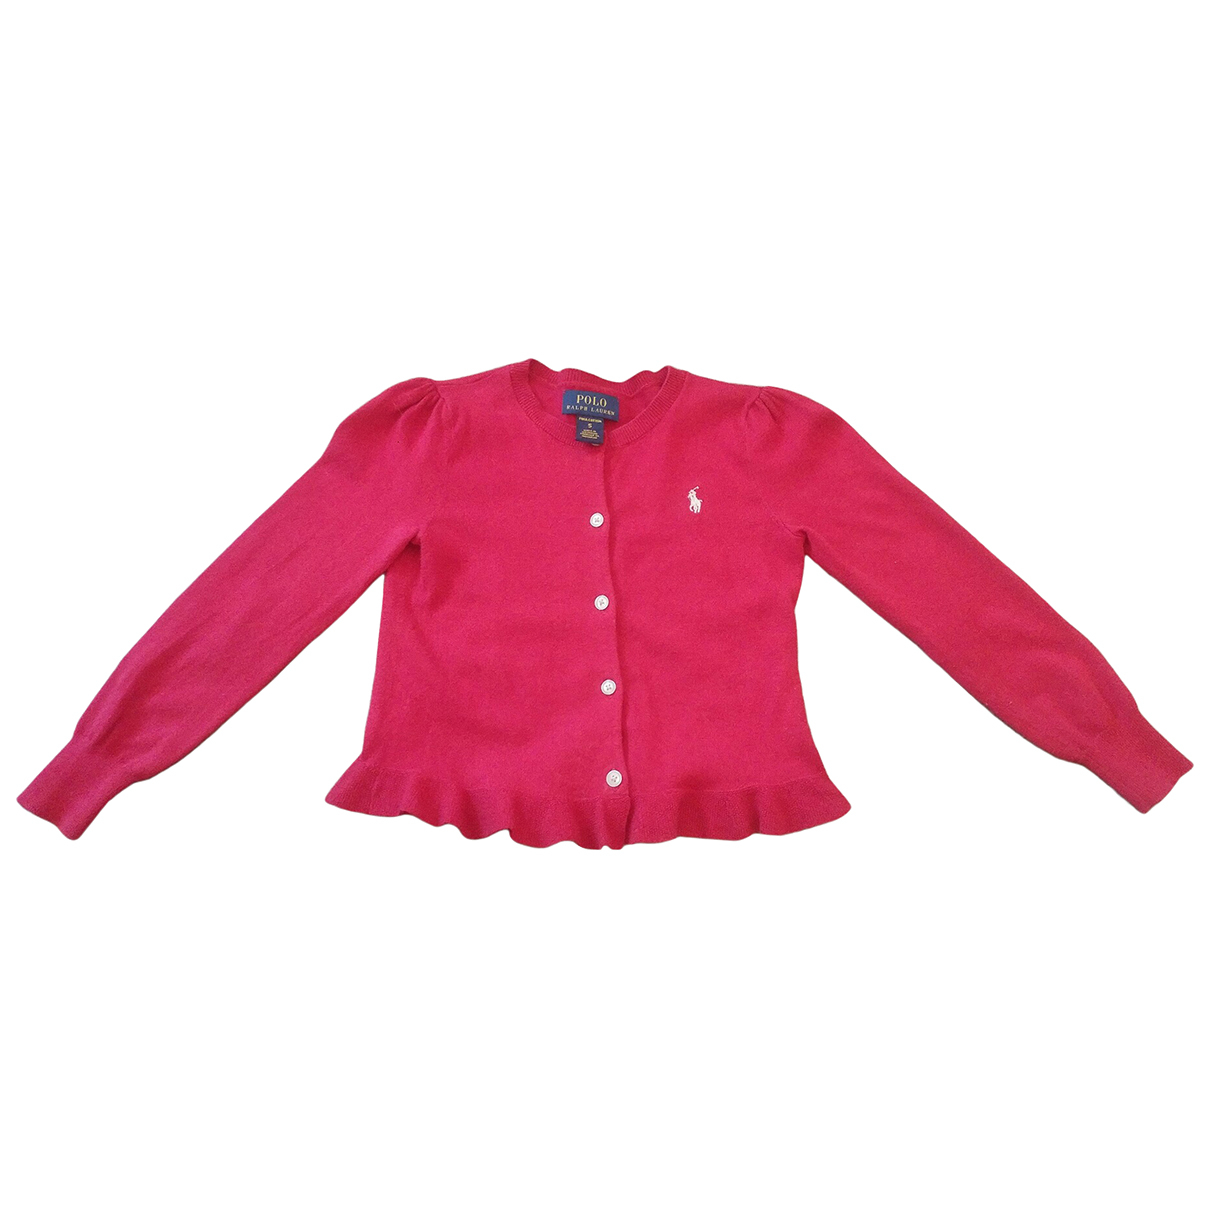 Polo Ralph Lauren \N Red Cotton Knitwear for Kids 5 years - up to 108cm FR